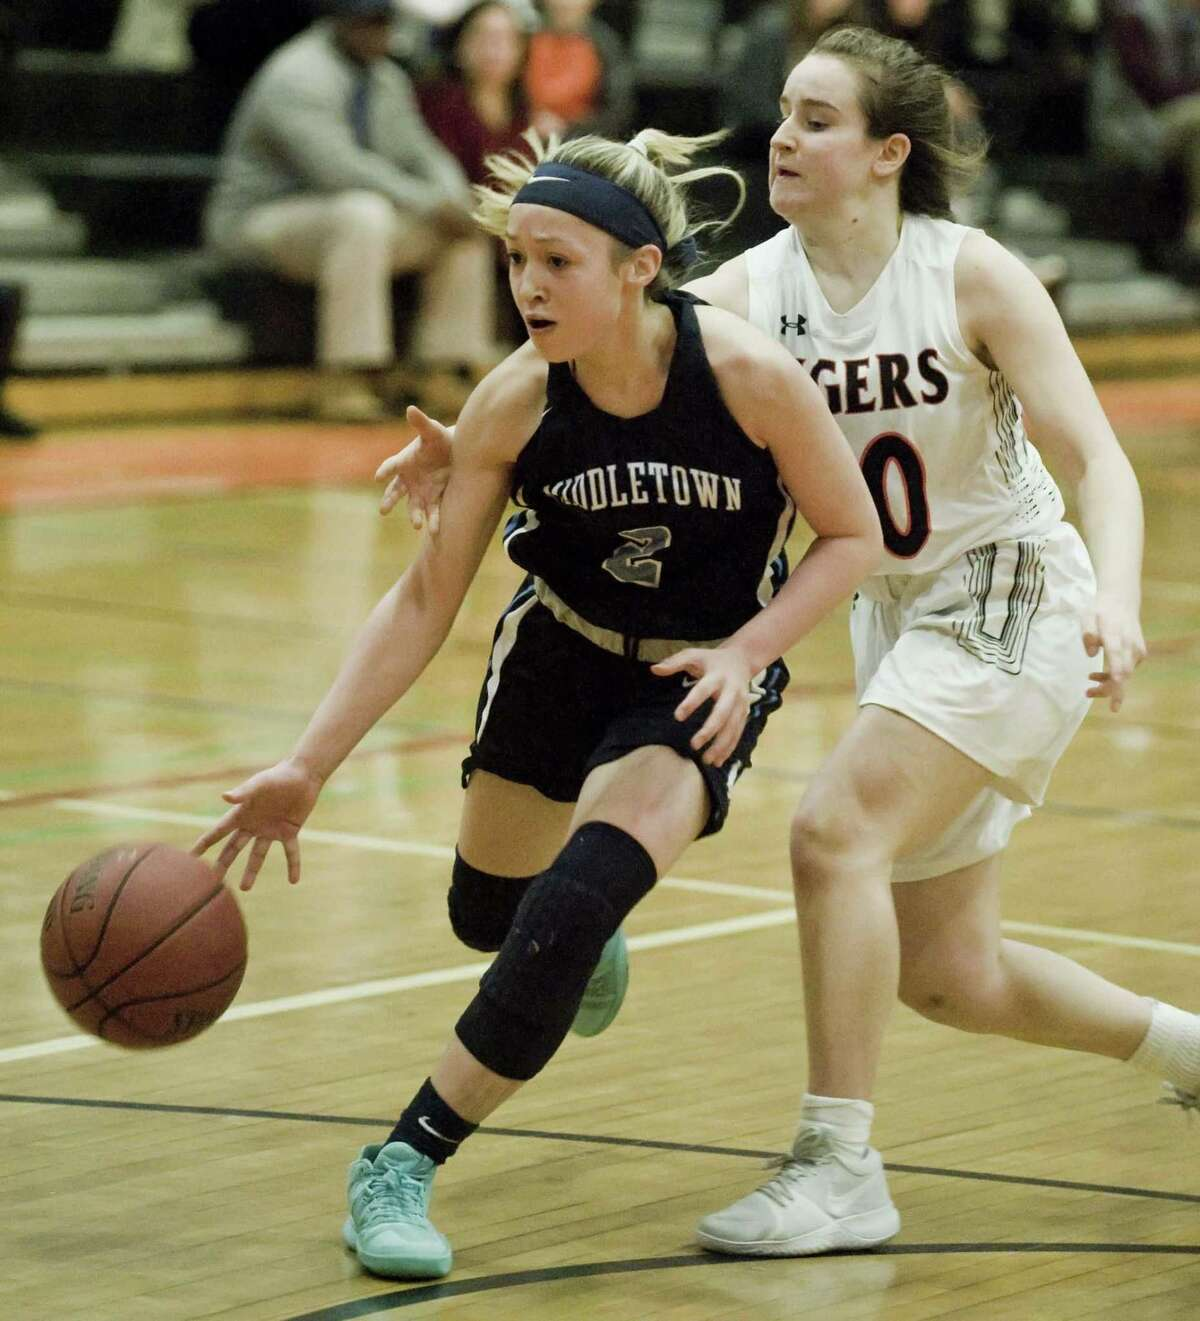 Middletown High School's Amanda Fudge works around Ridgefield High School's Kate Wagner in the Class LL girls basketball game played at Ridgefield. Monday, Feb. 26, 2018